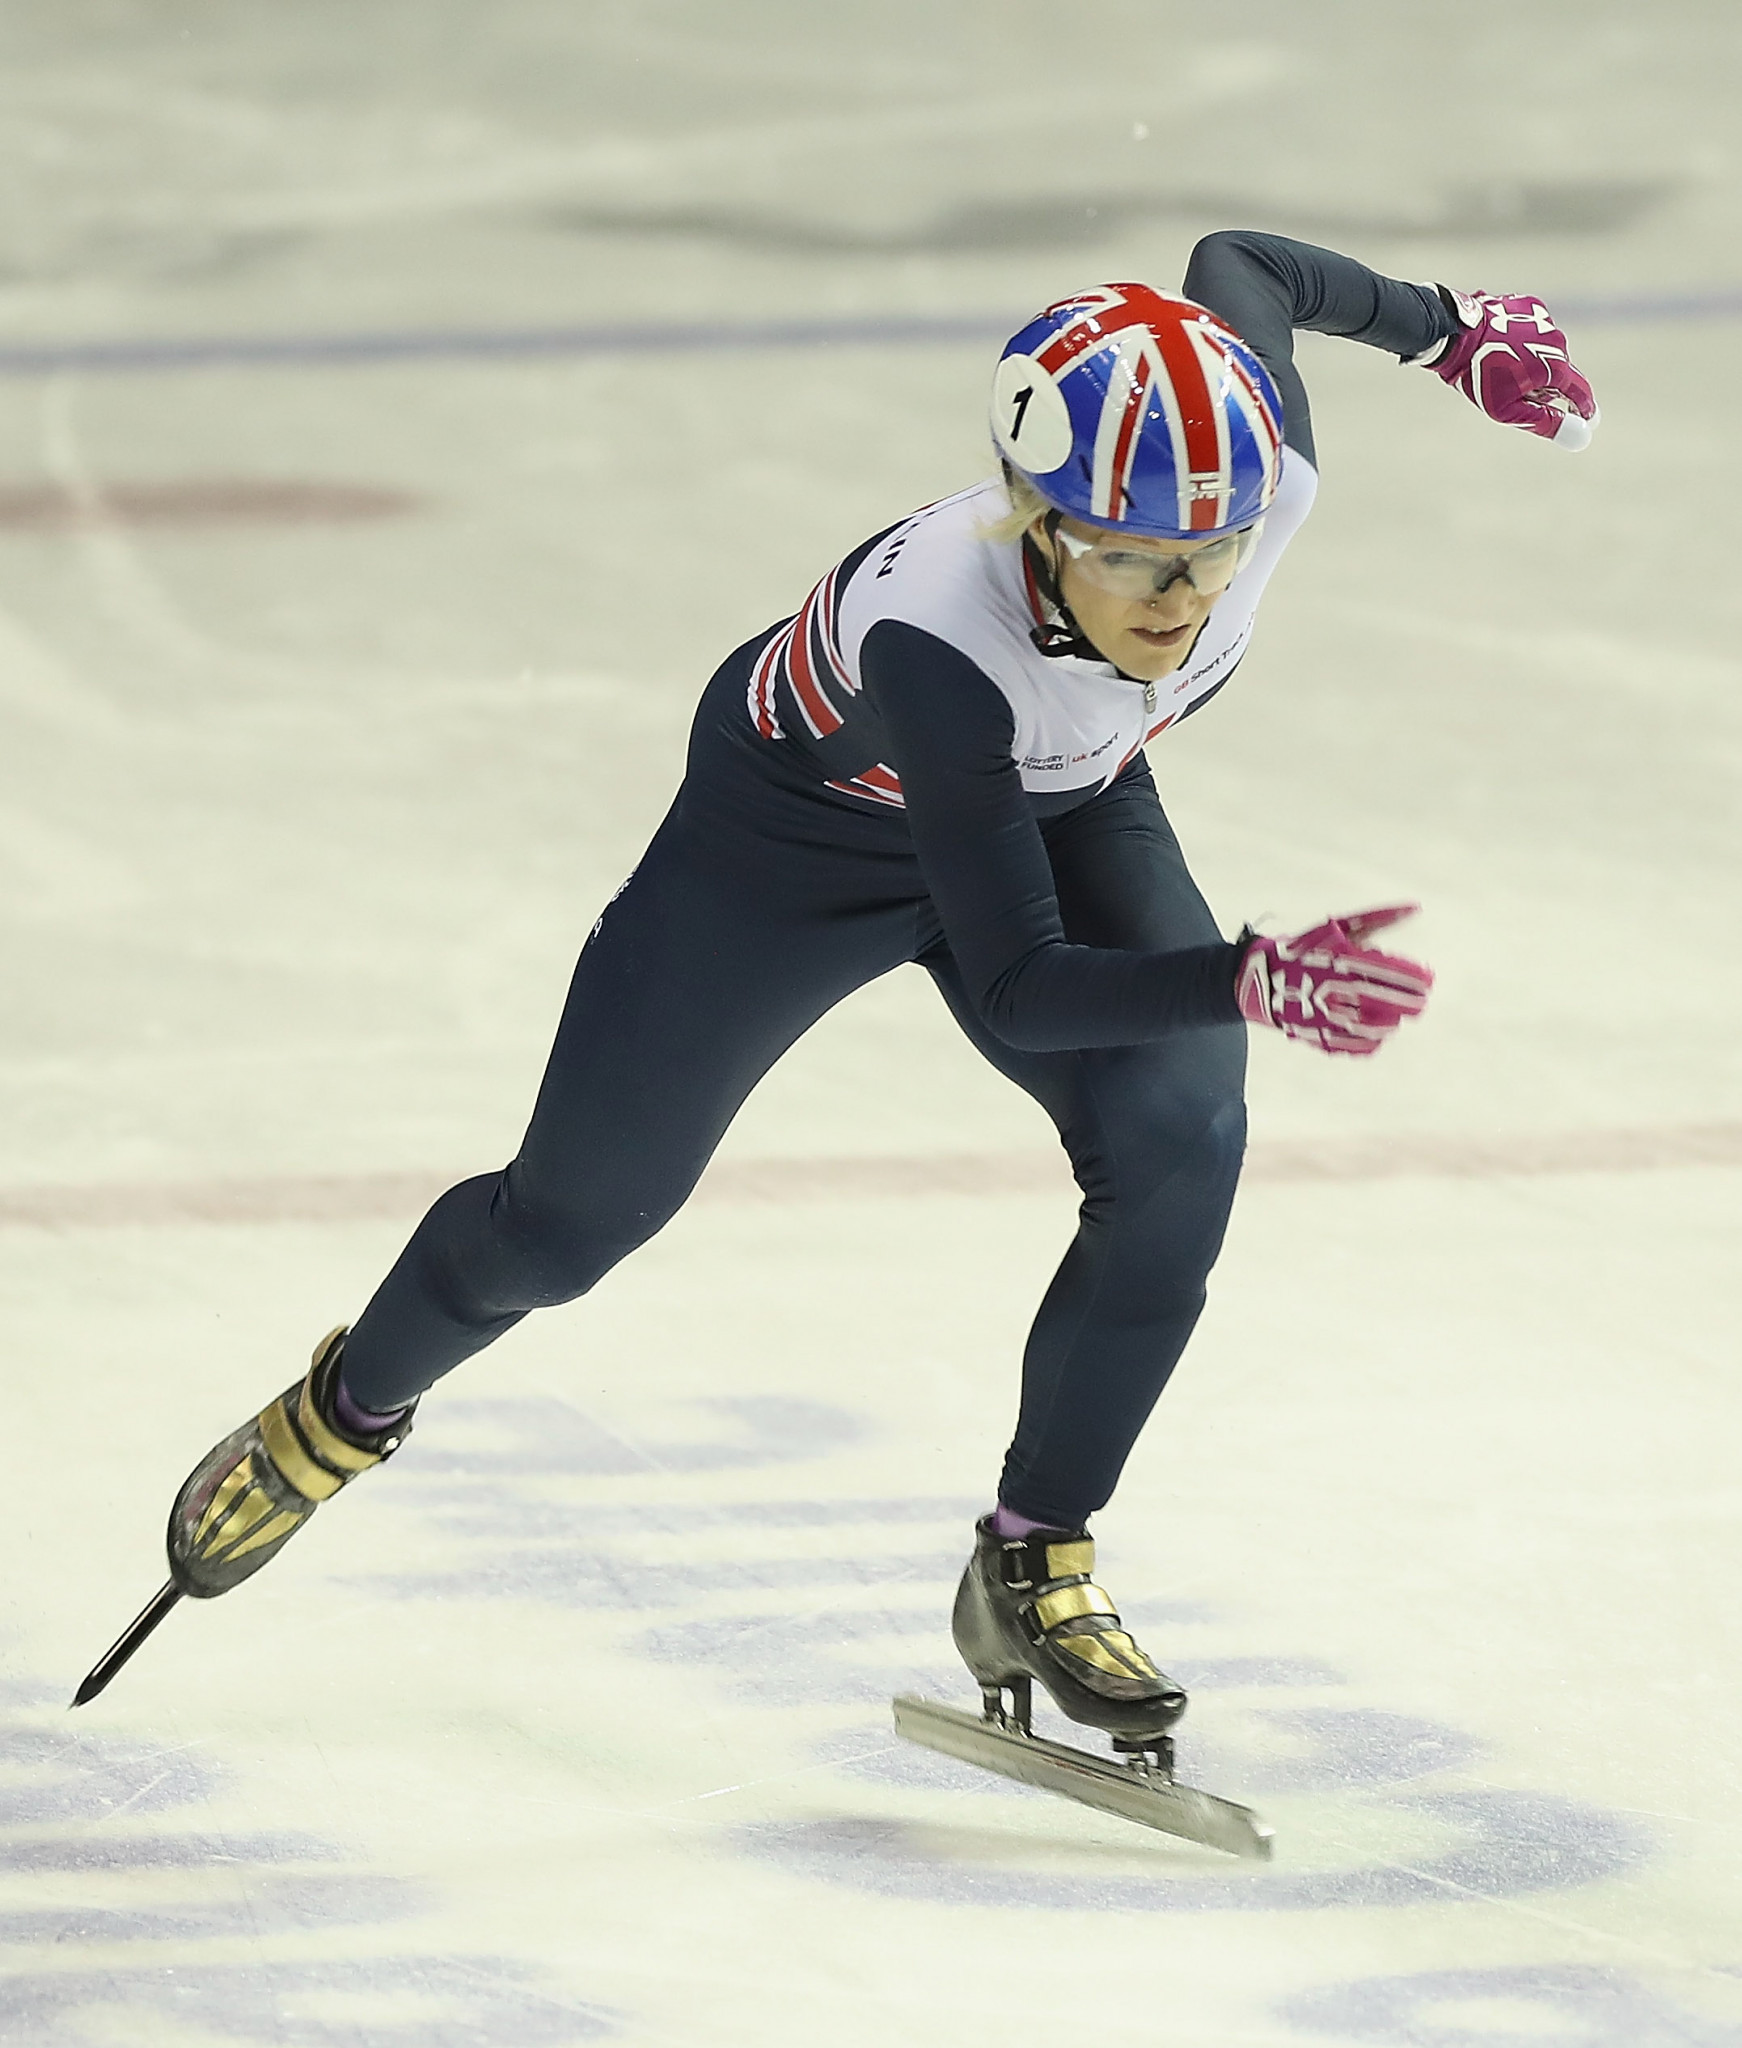 Britain's Pyeongchang 2018 focus will likely be on Elise Christie, with other countries diverting their eyes to to their own stories ©Getty Images